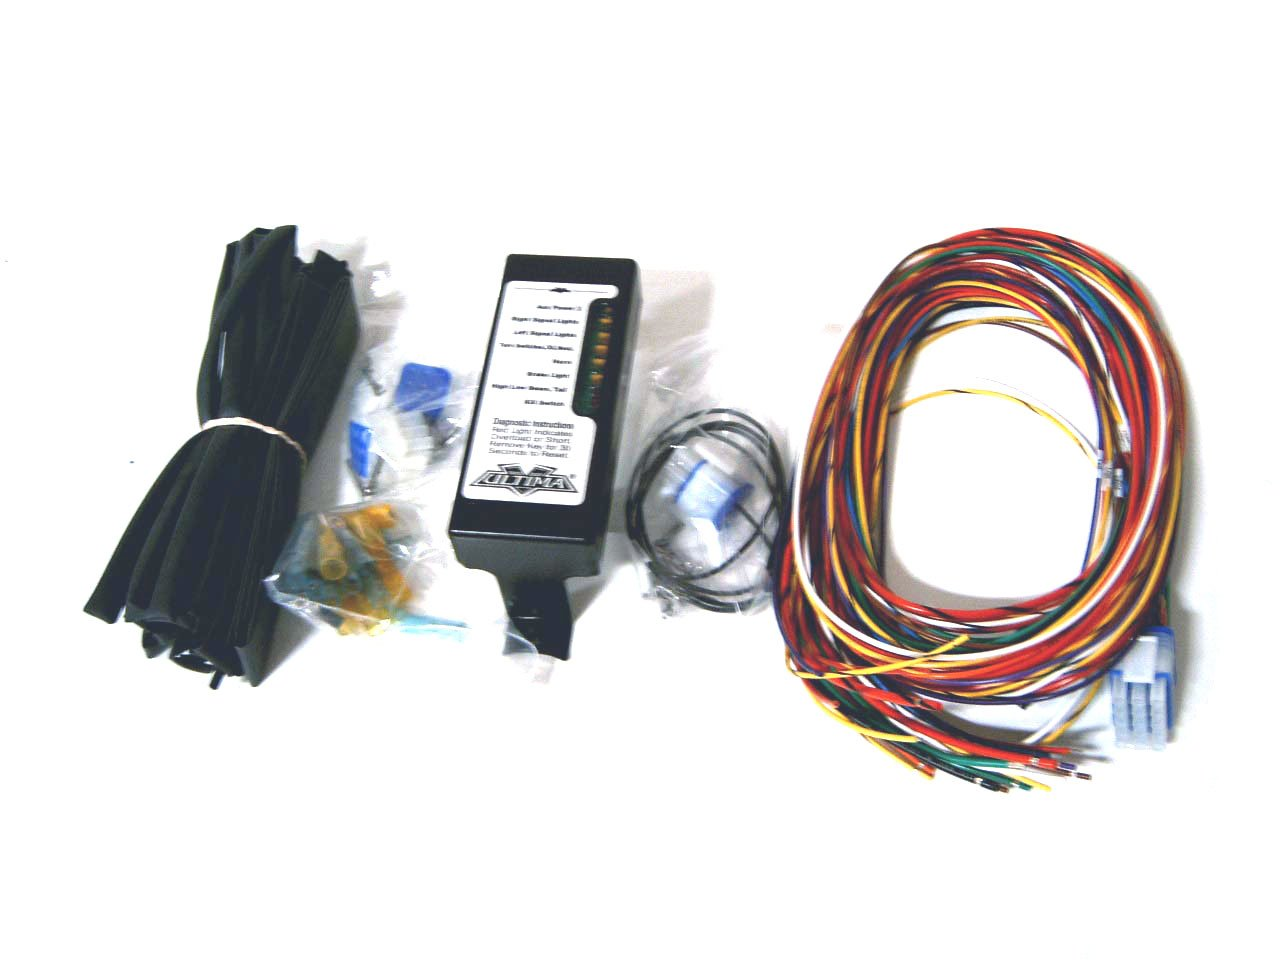 61DV2Bq5%2BHL._SL1280_ amazon com ultima complete wiring harness kit for harley davidson auto wiring harness kits at mifinder.co